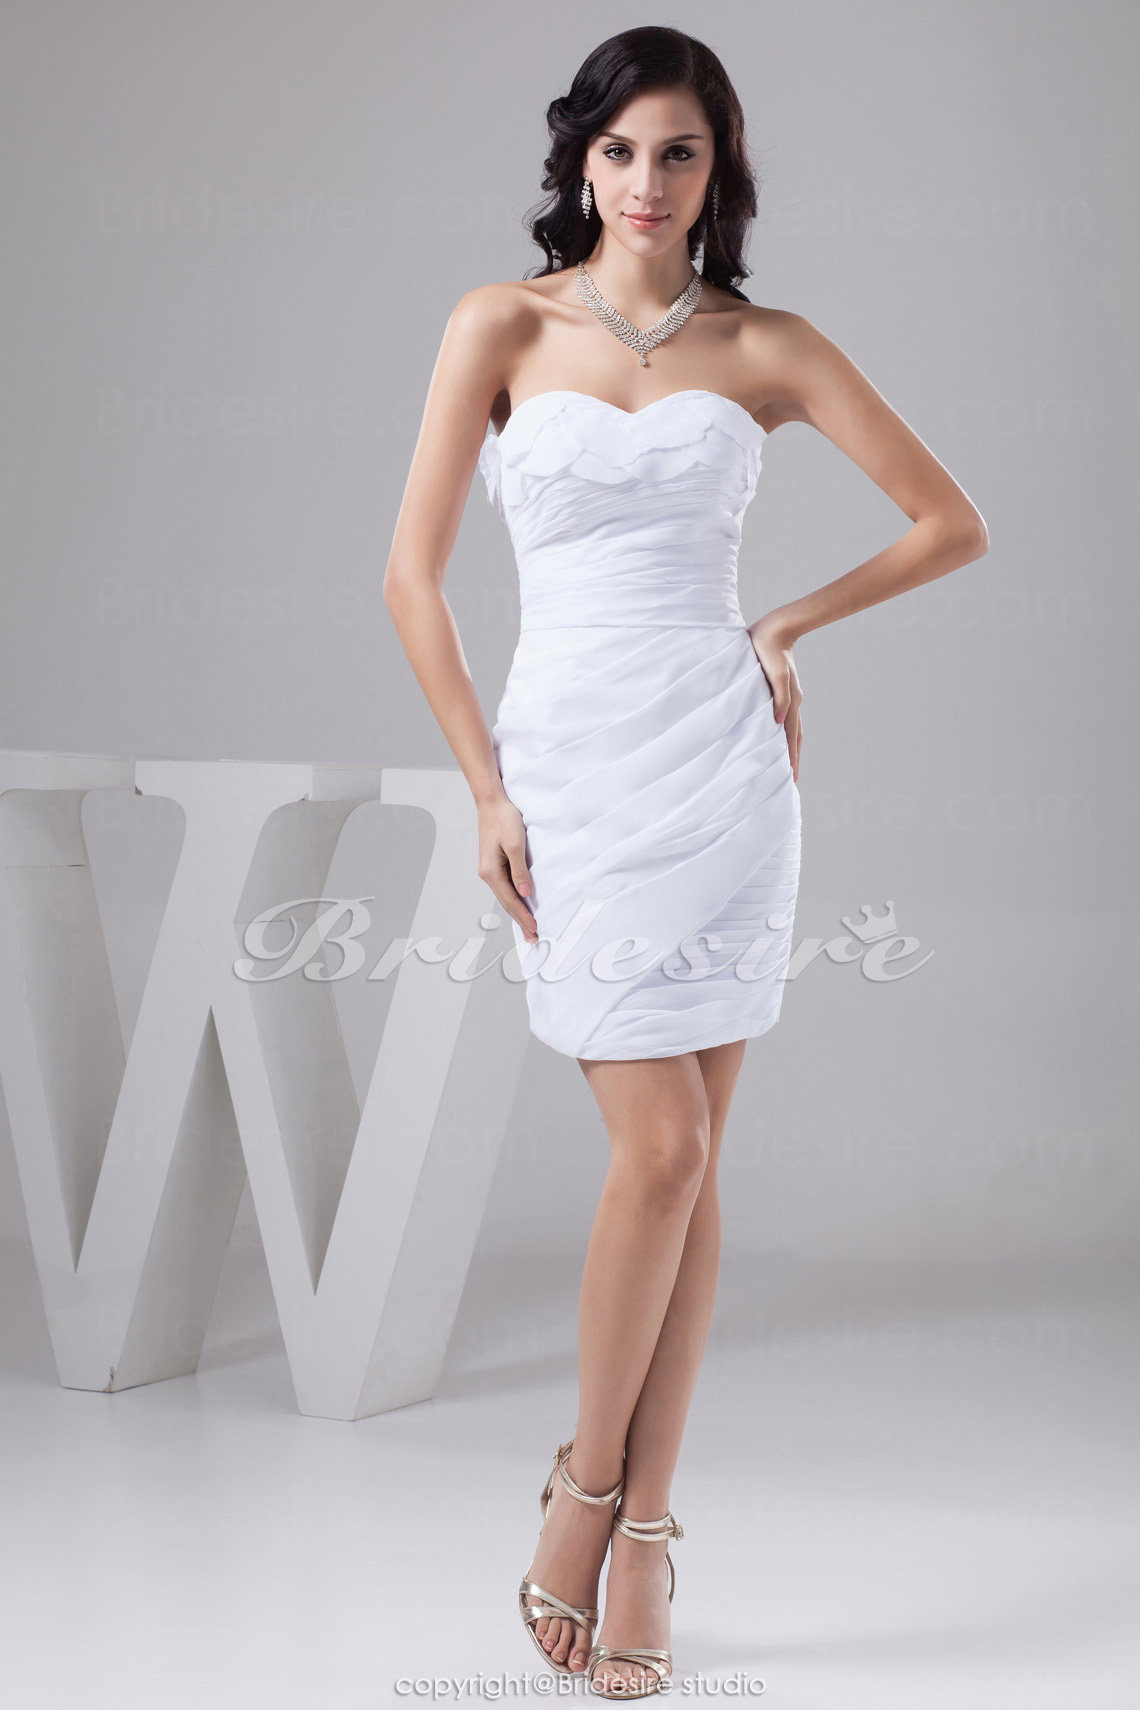 Sheath/Column Sweetheart Short/Mini Sleeveless Taffeta Dress